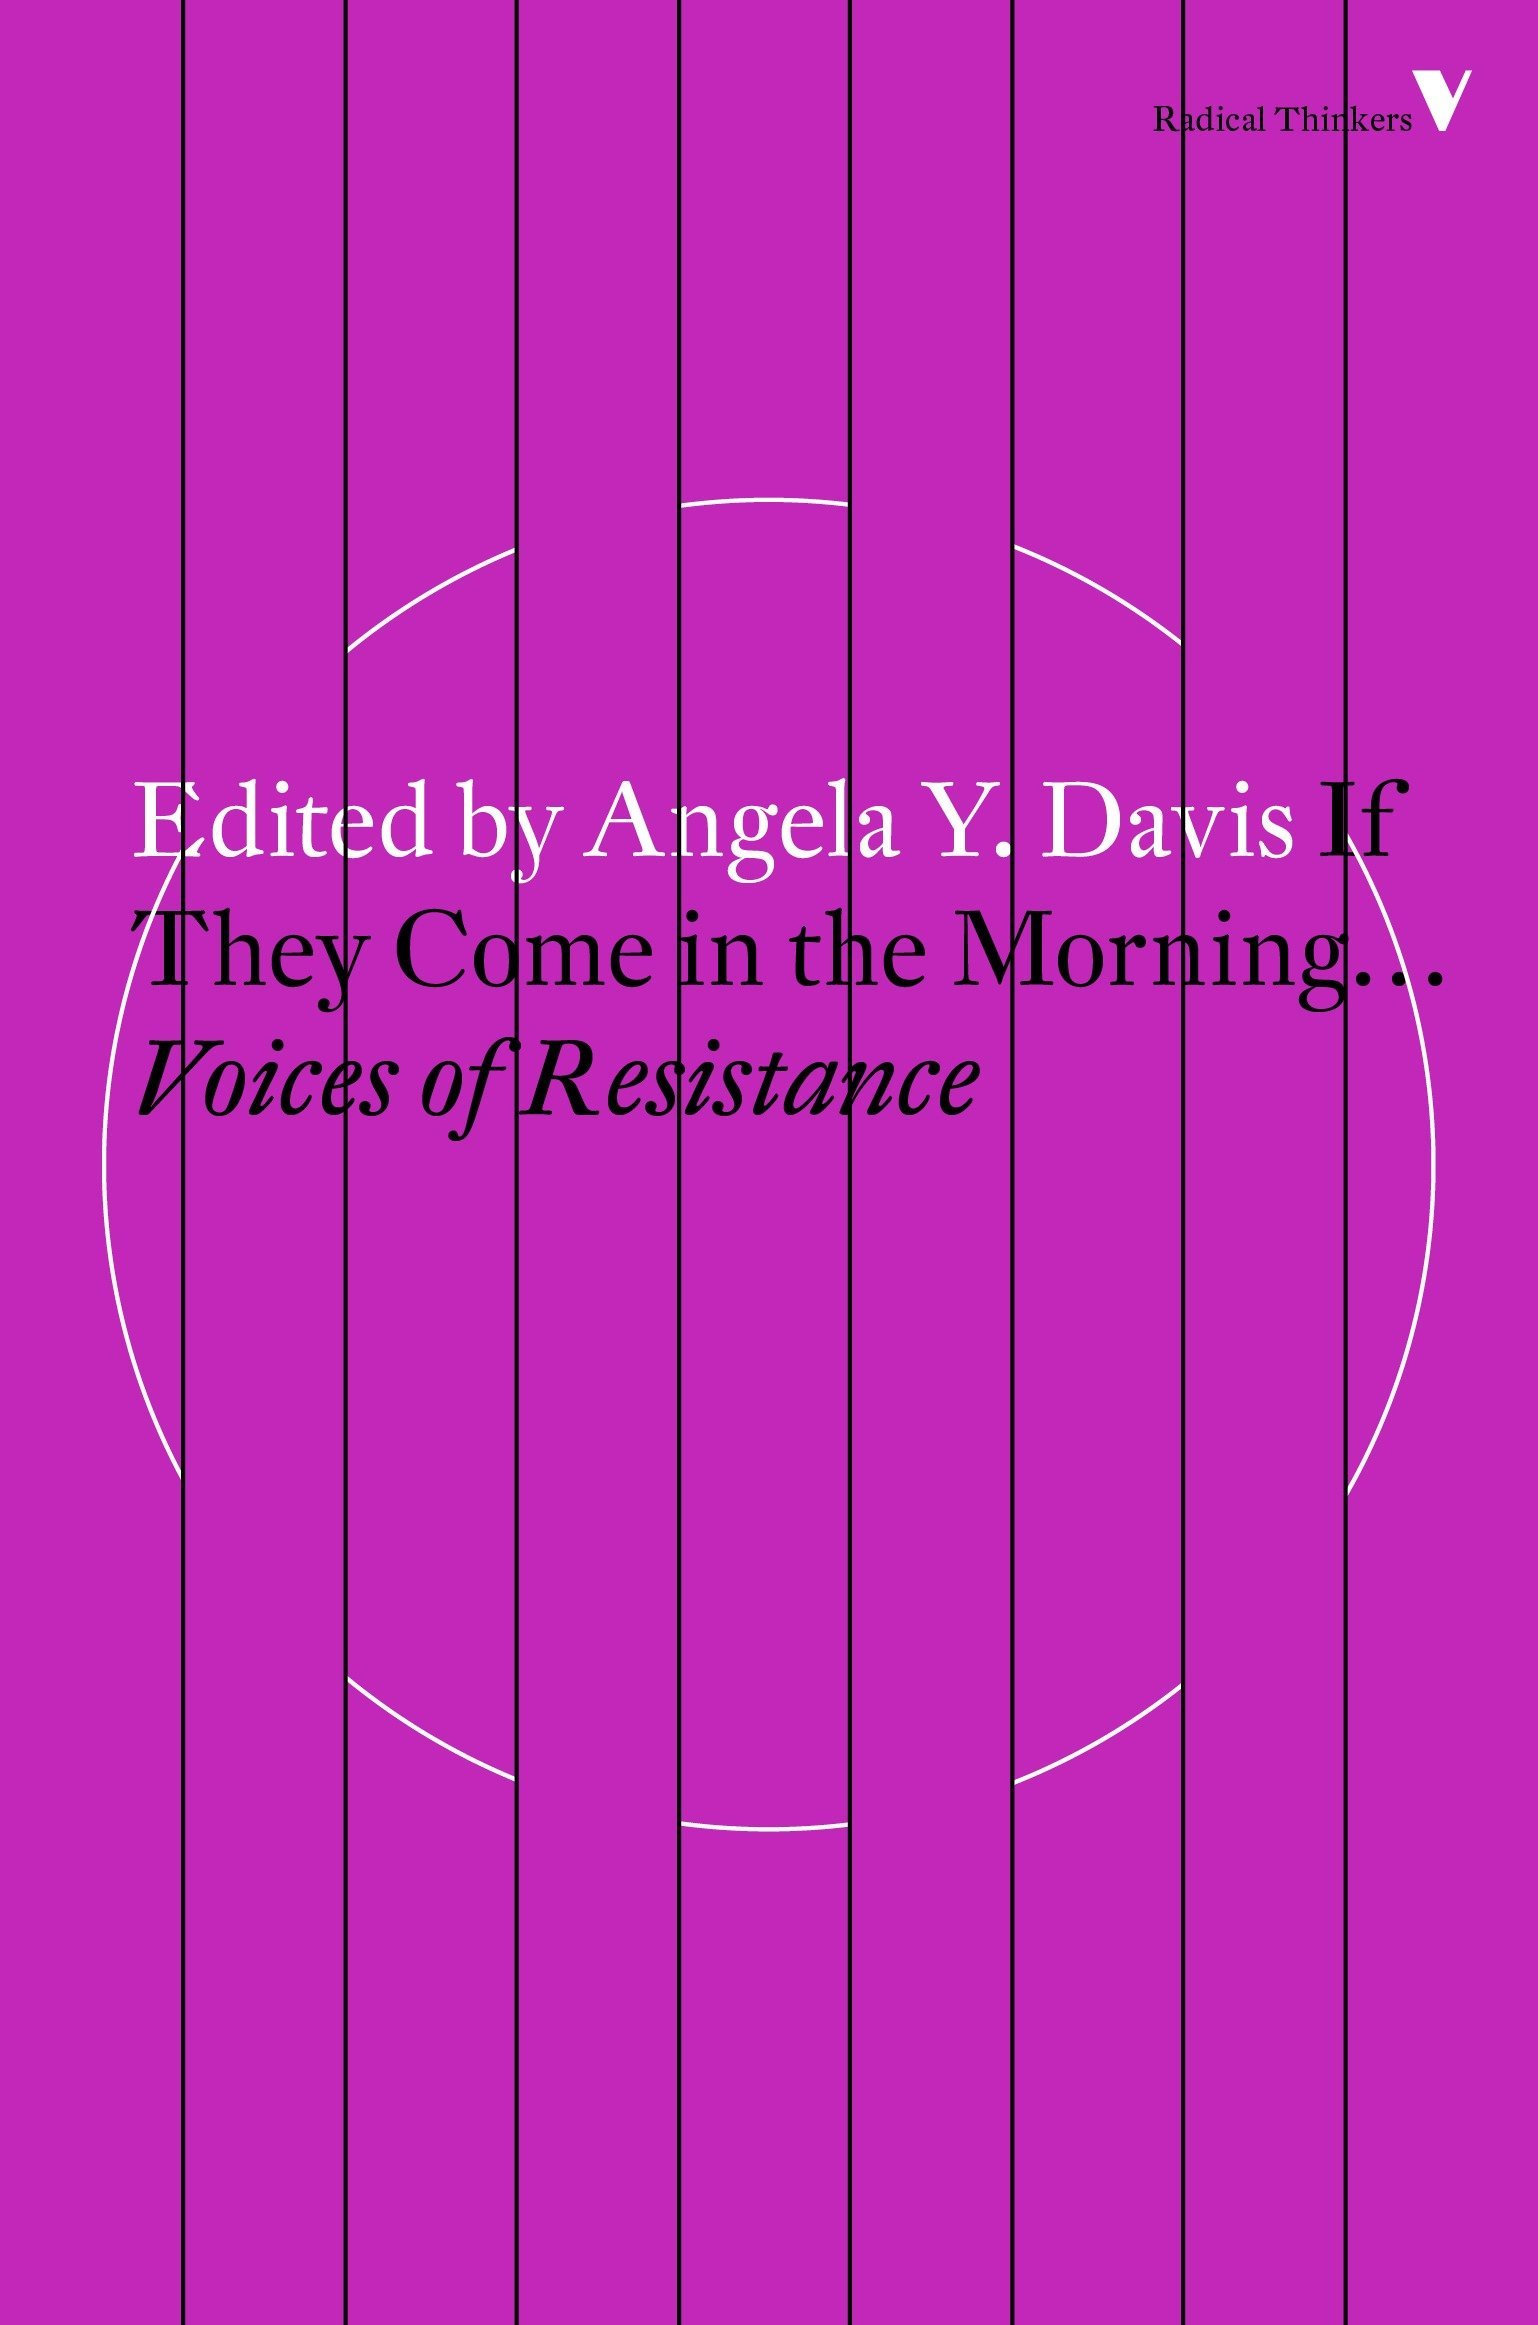 If They Come in the Morning: Voices of Resistance